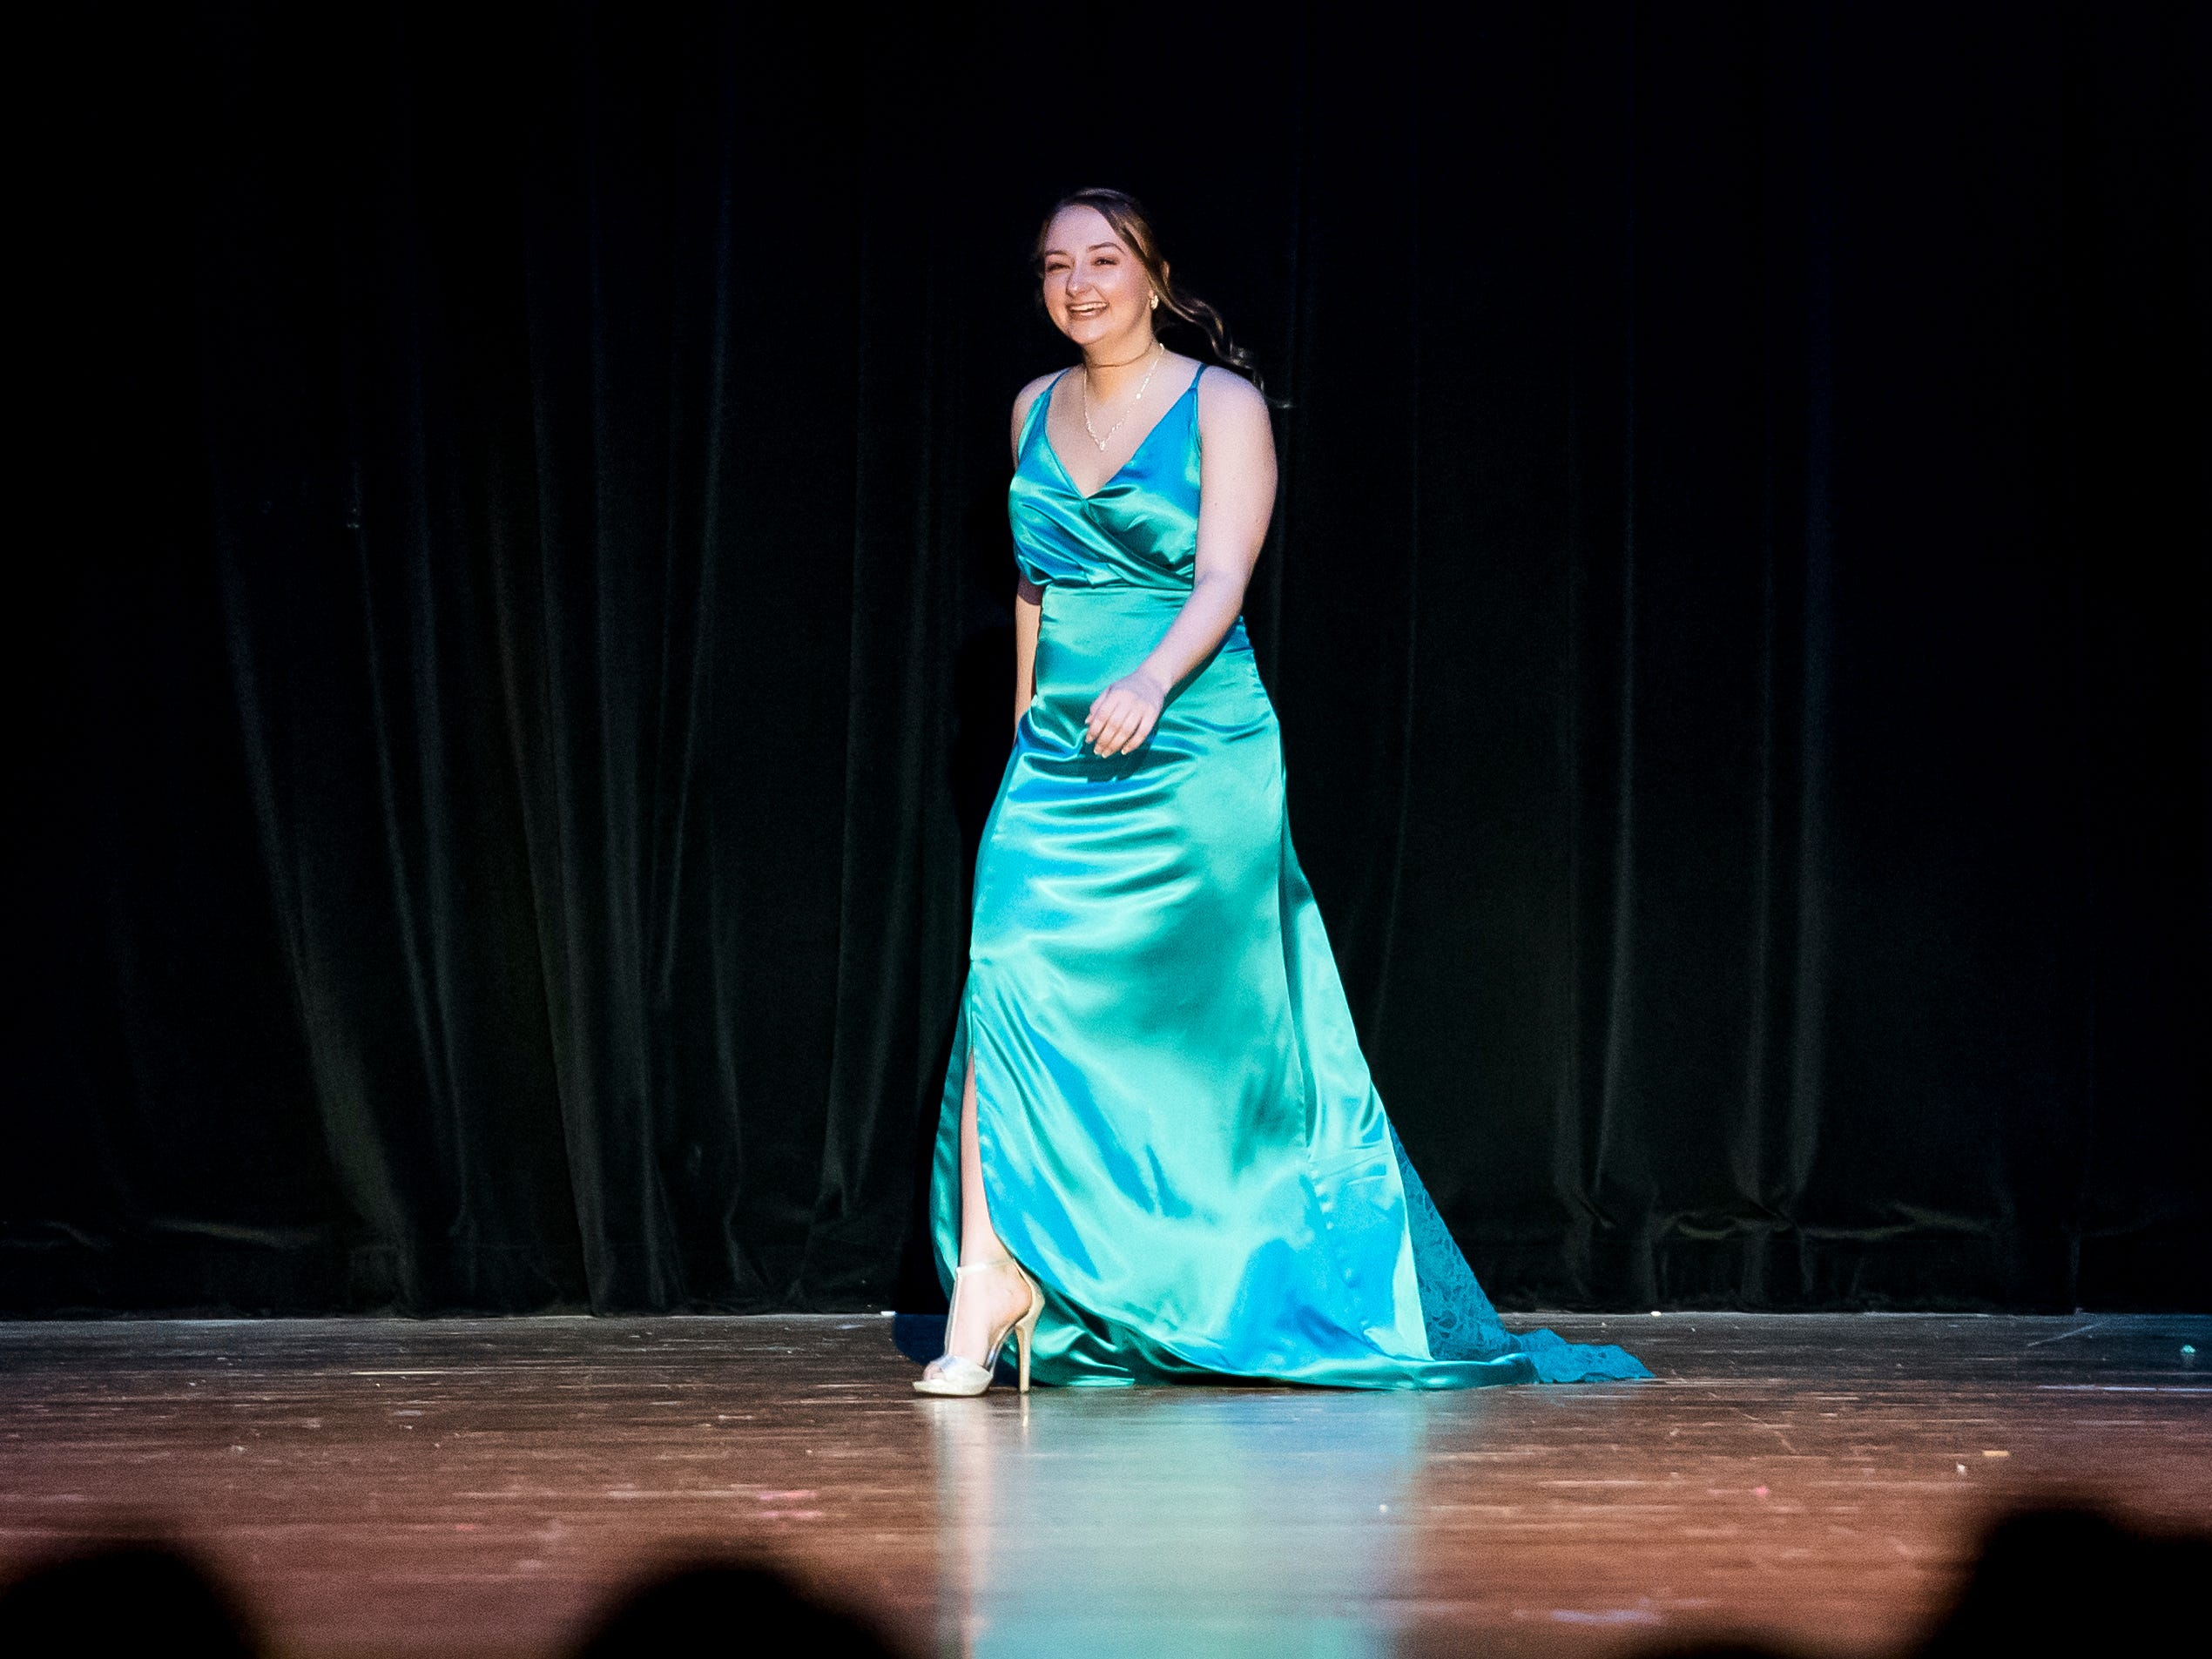 Danielle Ginevra walks on stage during the evening gown competition in the 50th Miss Hanover Area pageant on Monday, October 22, 2018.